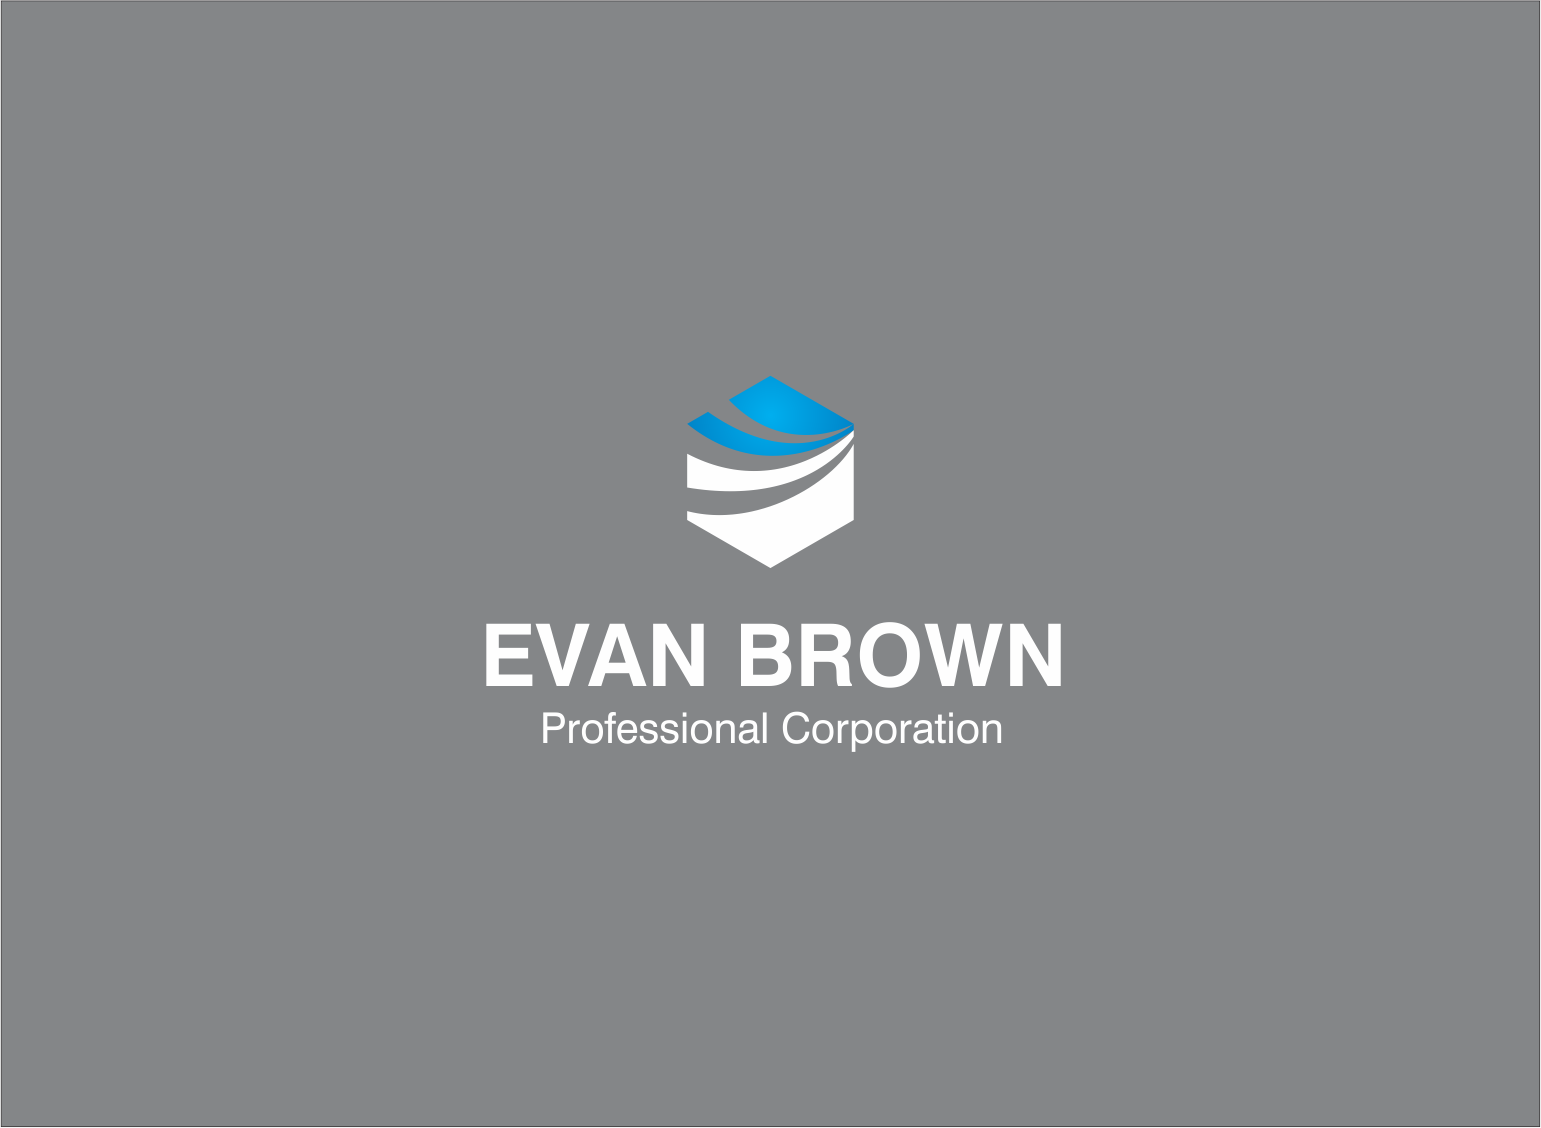 Logo Design by Armada Jamaluddin - Entry No. 88 in the Logo Design Contest Inspiring Logo Design for Evan Brown Professional Corporation.